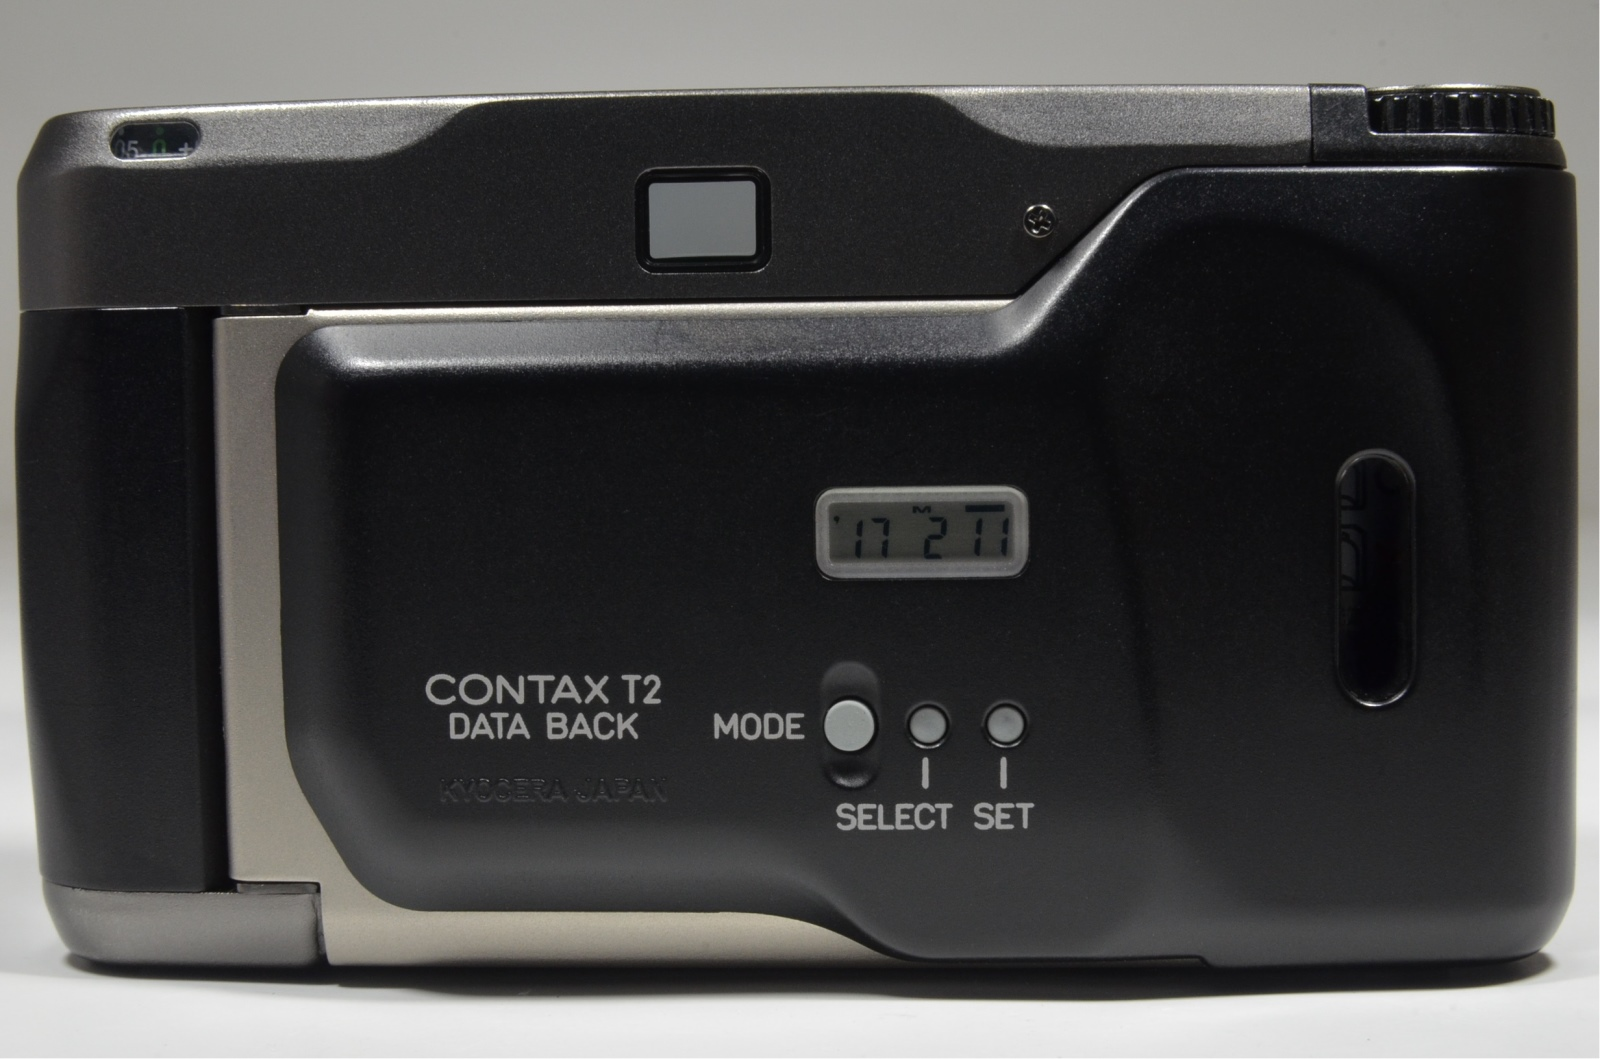 contax t2 data back titanium black point & shoot 35mm film camera